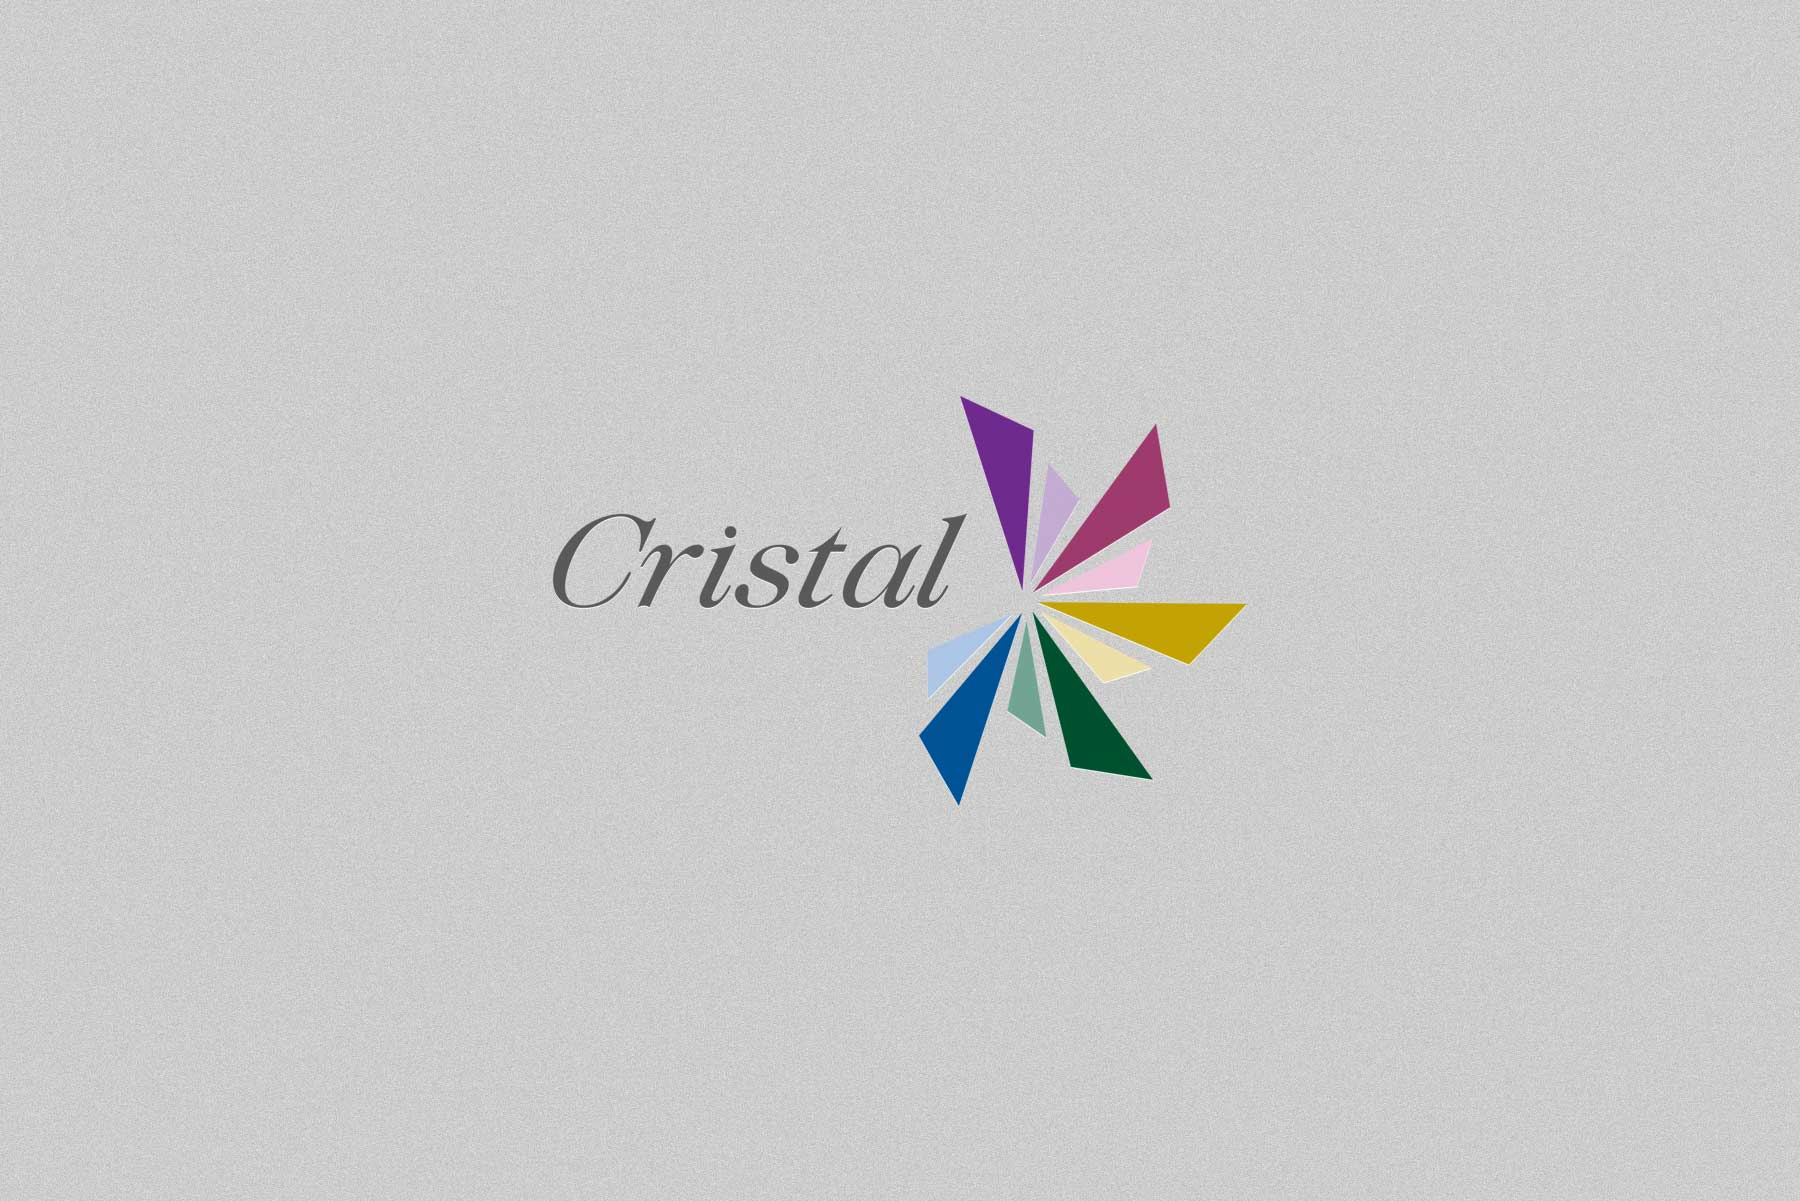 CRISTAL HOTELS & RESORTS ON TRACK TO TRIPLE ITS PORTFOLIO WITHIN TWO YEARS